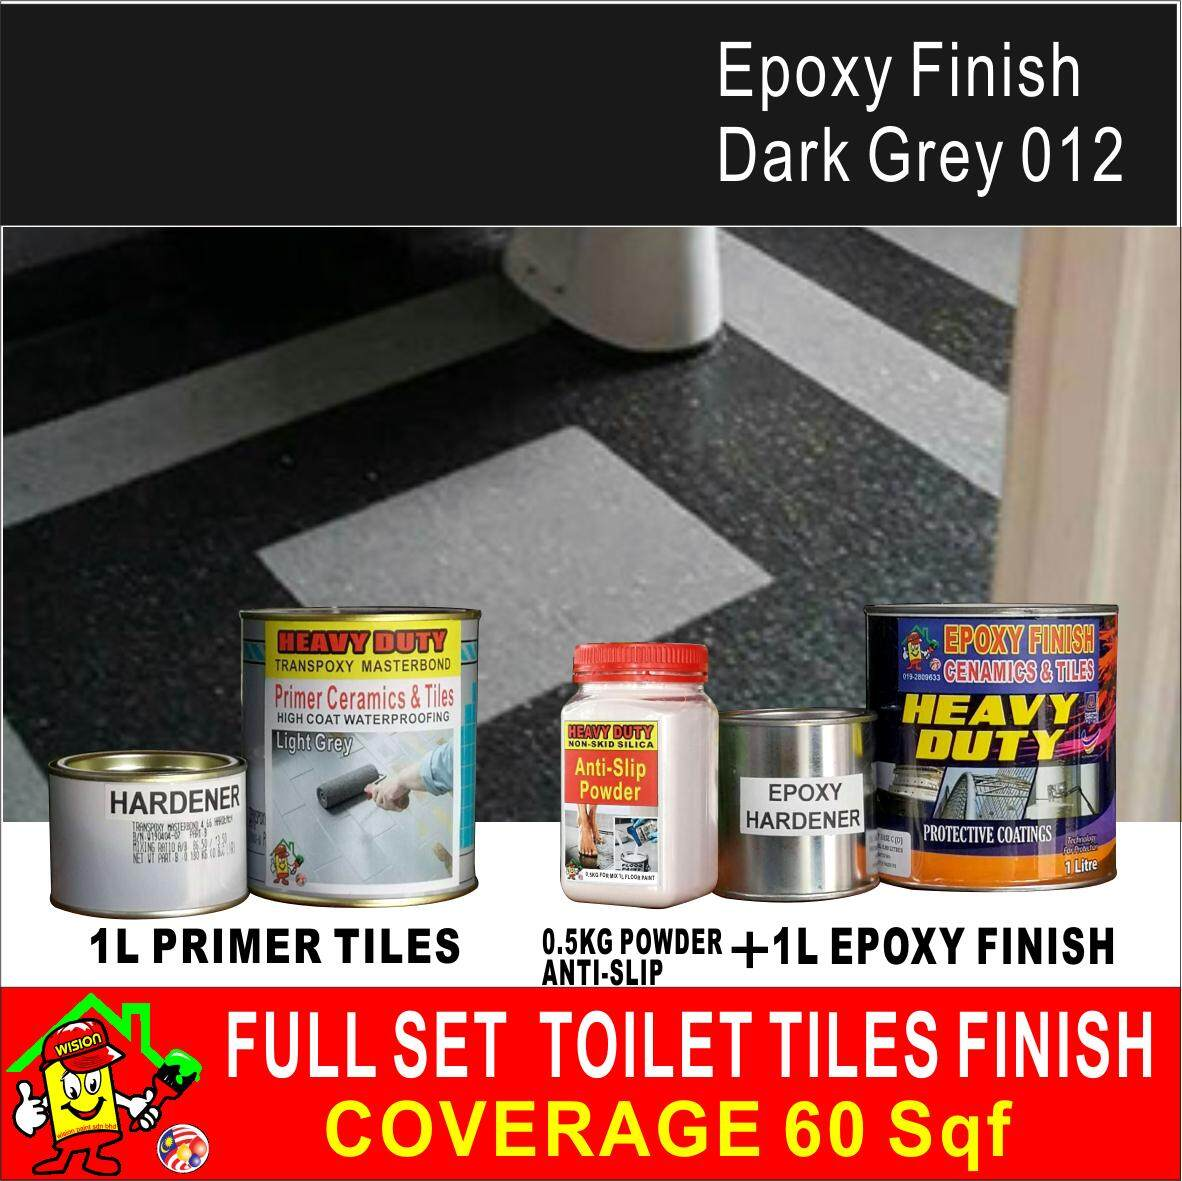 012 DARK GREY ( FULL SET ) TOILET TILES FINISH 1L PRIMER TILES AND 0.5 KG POWDER ANTI SLIP AND 1L EPOXY FINISH PAINT COVERAGE 60 SQF HEAVY DUTY CERAMICS AND TILES FINISH BATHROOM DESIGN PAINT